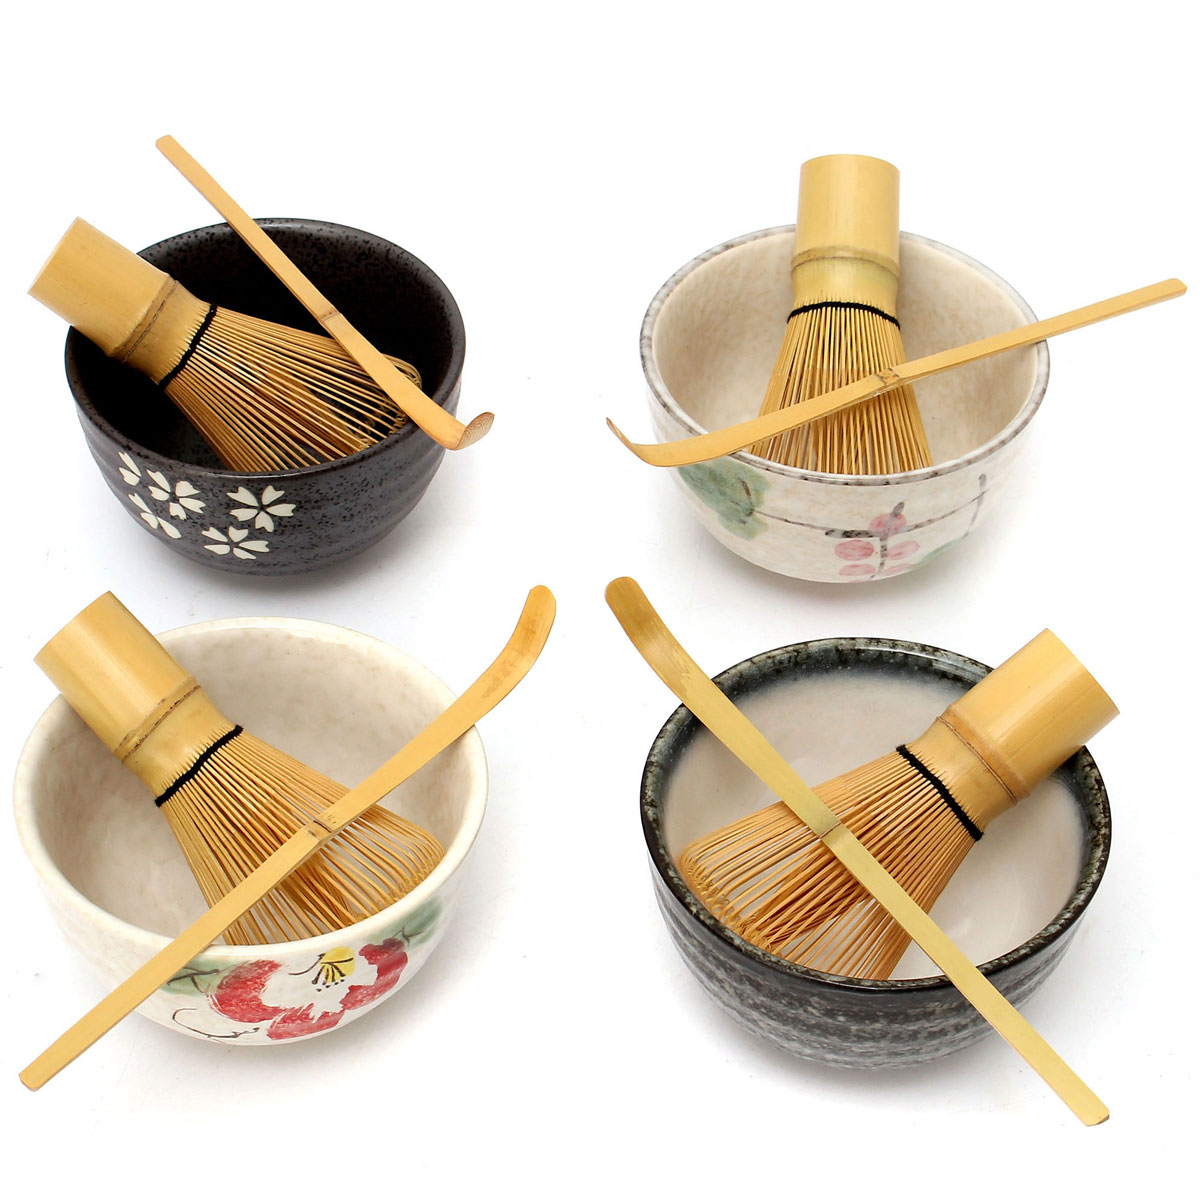 3  In 1 Tea Ceremony Matcha Ceramic Tea Bowl Bamboo Tea Scoop Matcha Whisk Japanese Teaware Tea Tool 4 Style Matcha Bowl Set